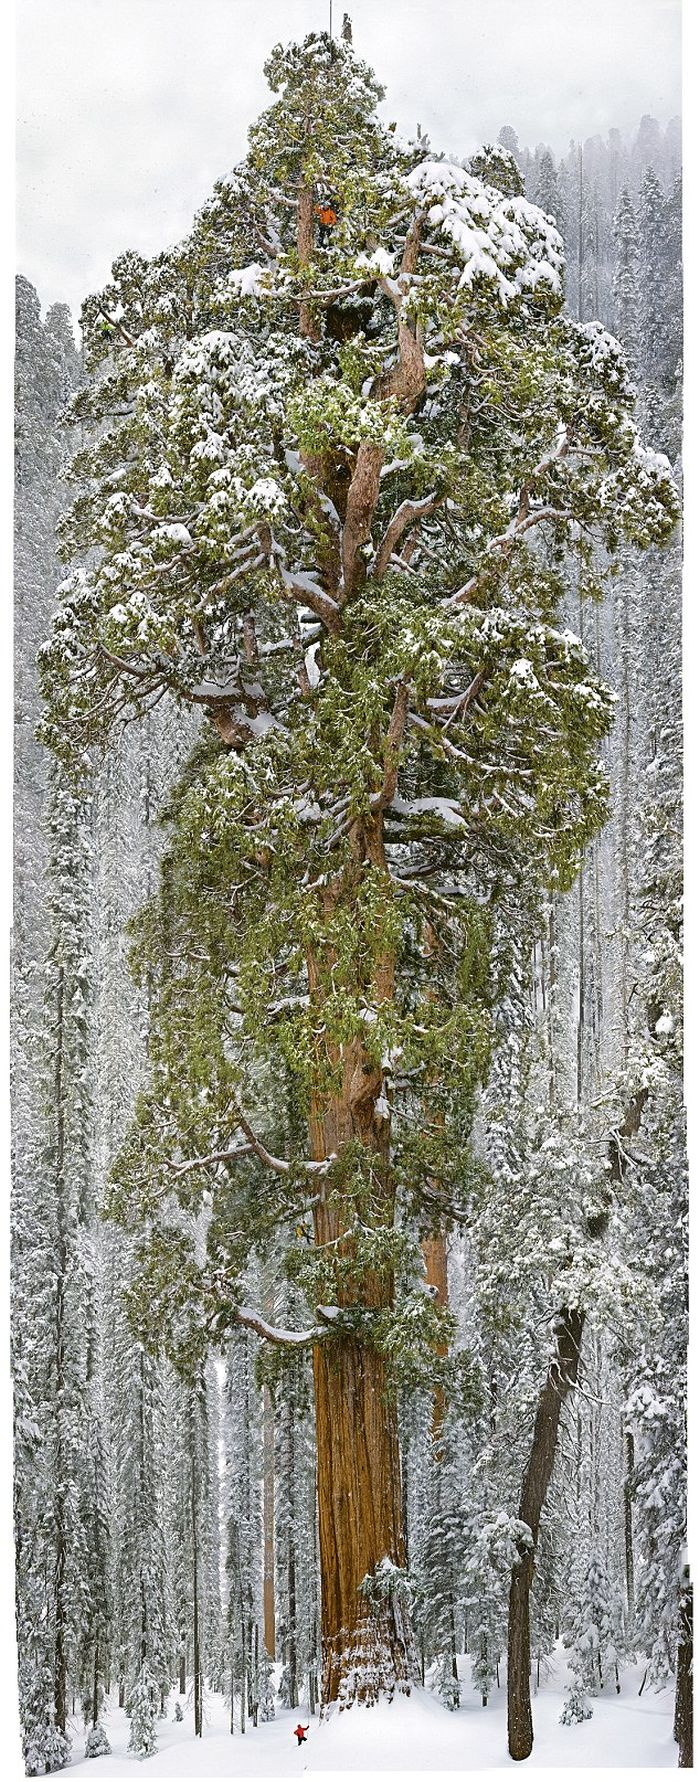 President tree, Giant Forest, Sequoia National Park, Visalia, California, United States